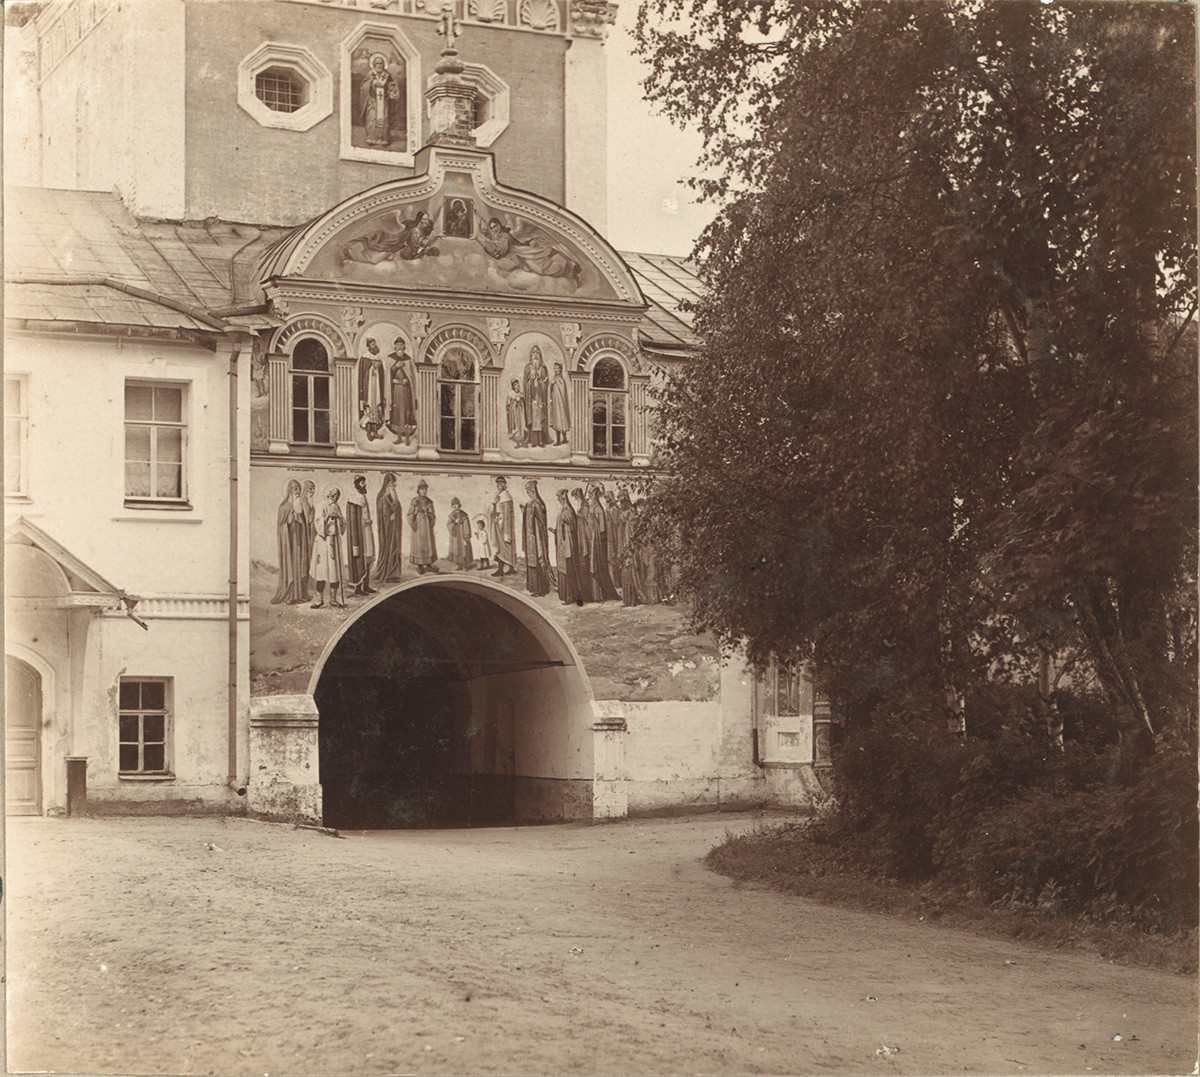 Holy Gate & Church of St. Nicholas. East view. 1910